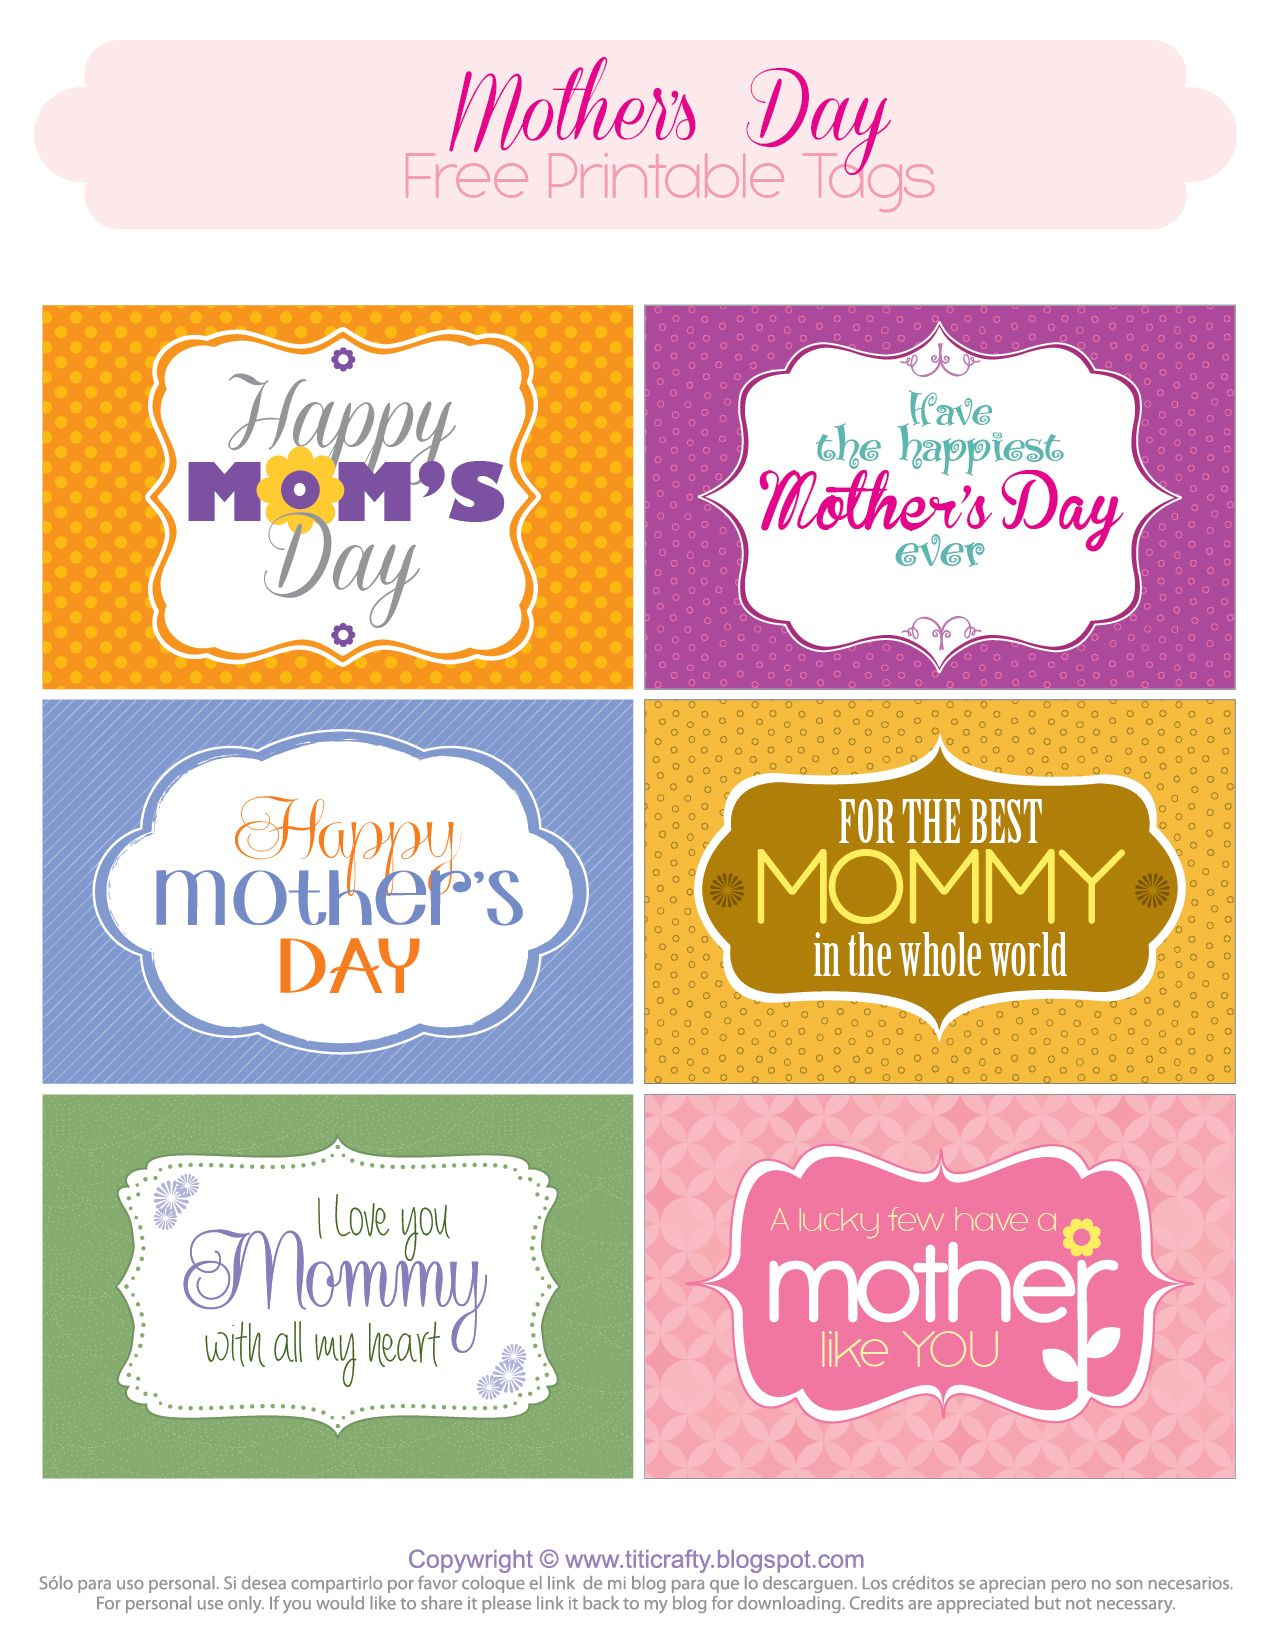 mother 39 s day free printable tags mother 39 s day and grandmother gifts pinterest printable. Black Bedroom Furniture Sets. Home Design Ideas